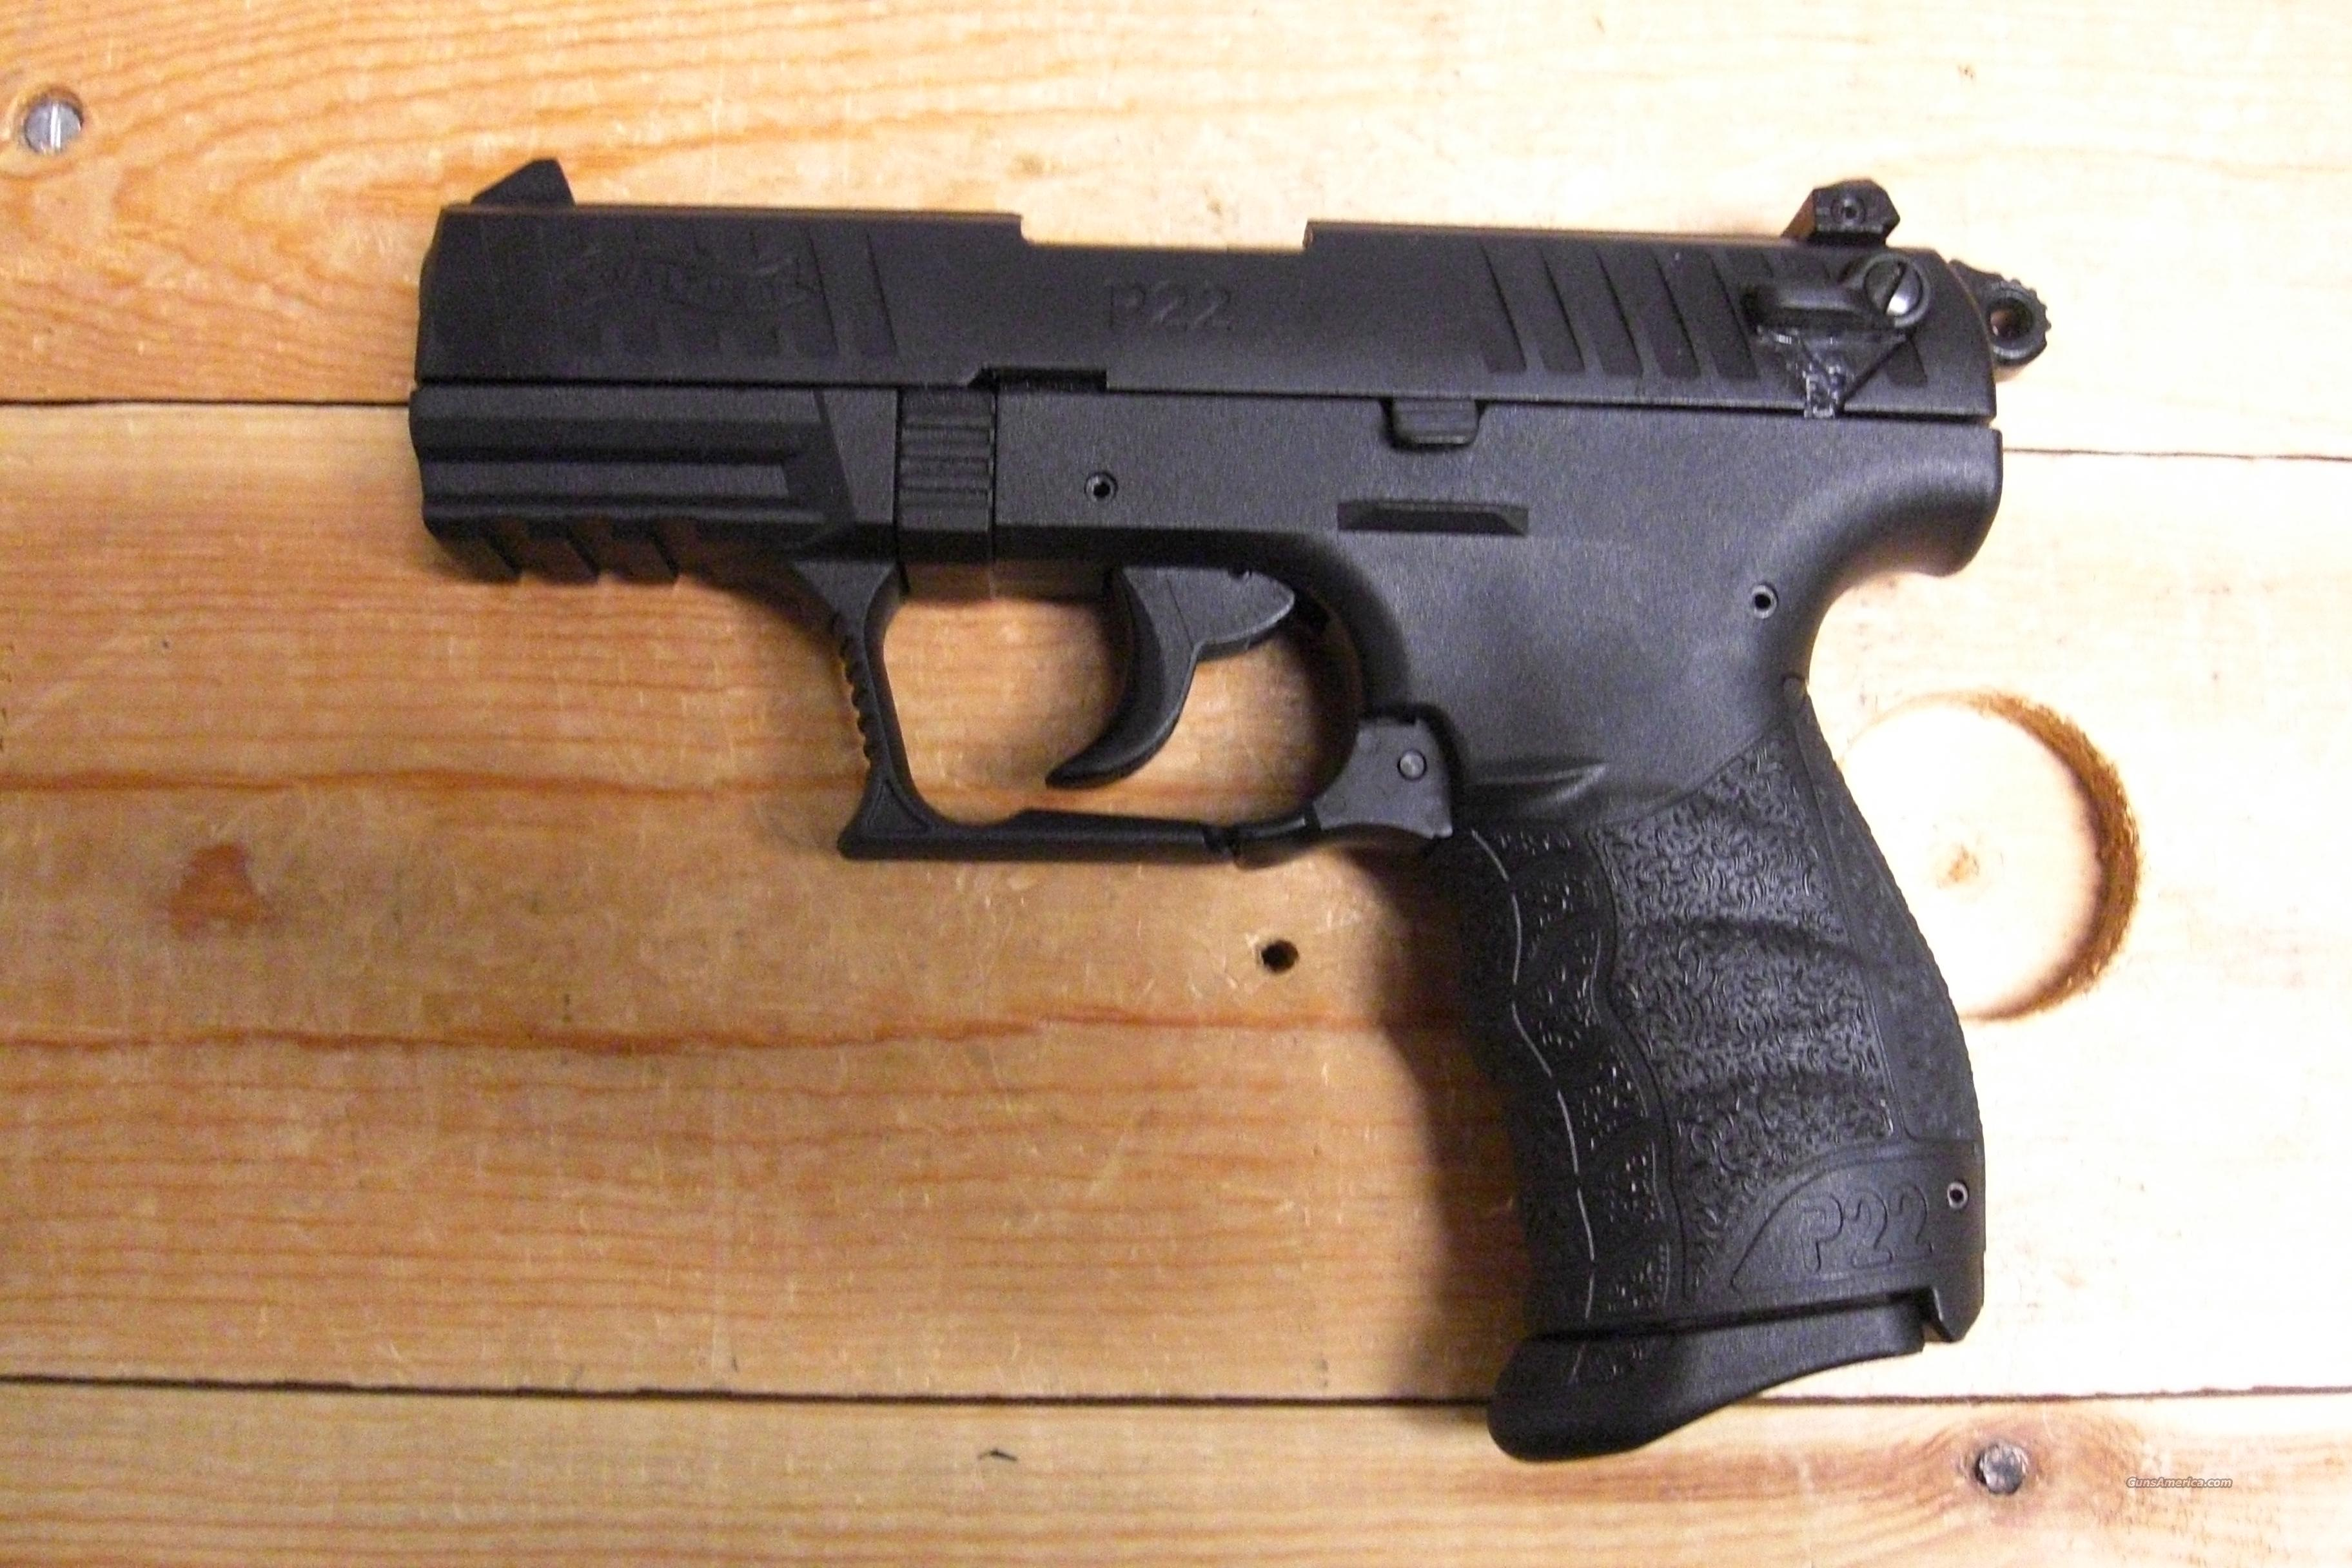 P-22 all black  Guns > Pistols > Walther Pistols > Post WWII > Target Pistols